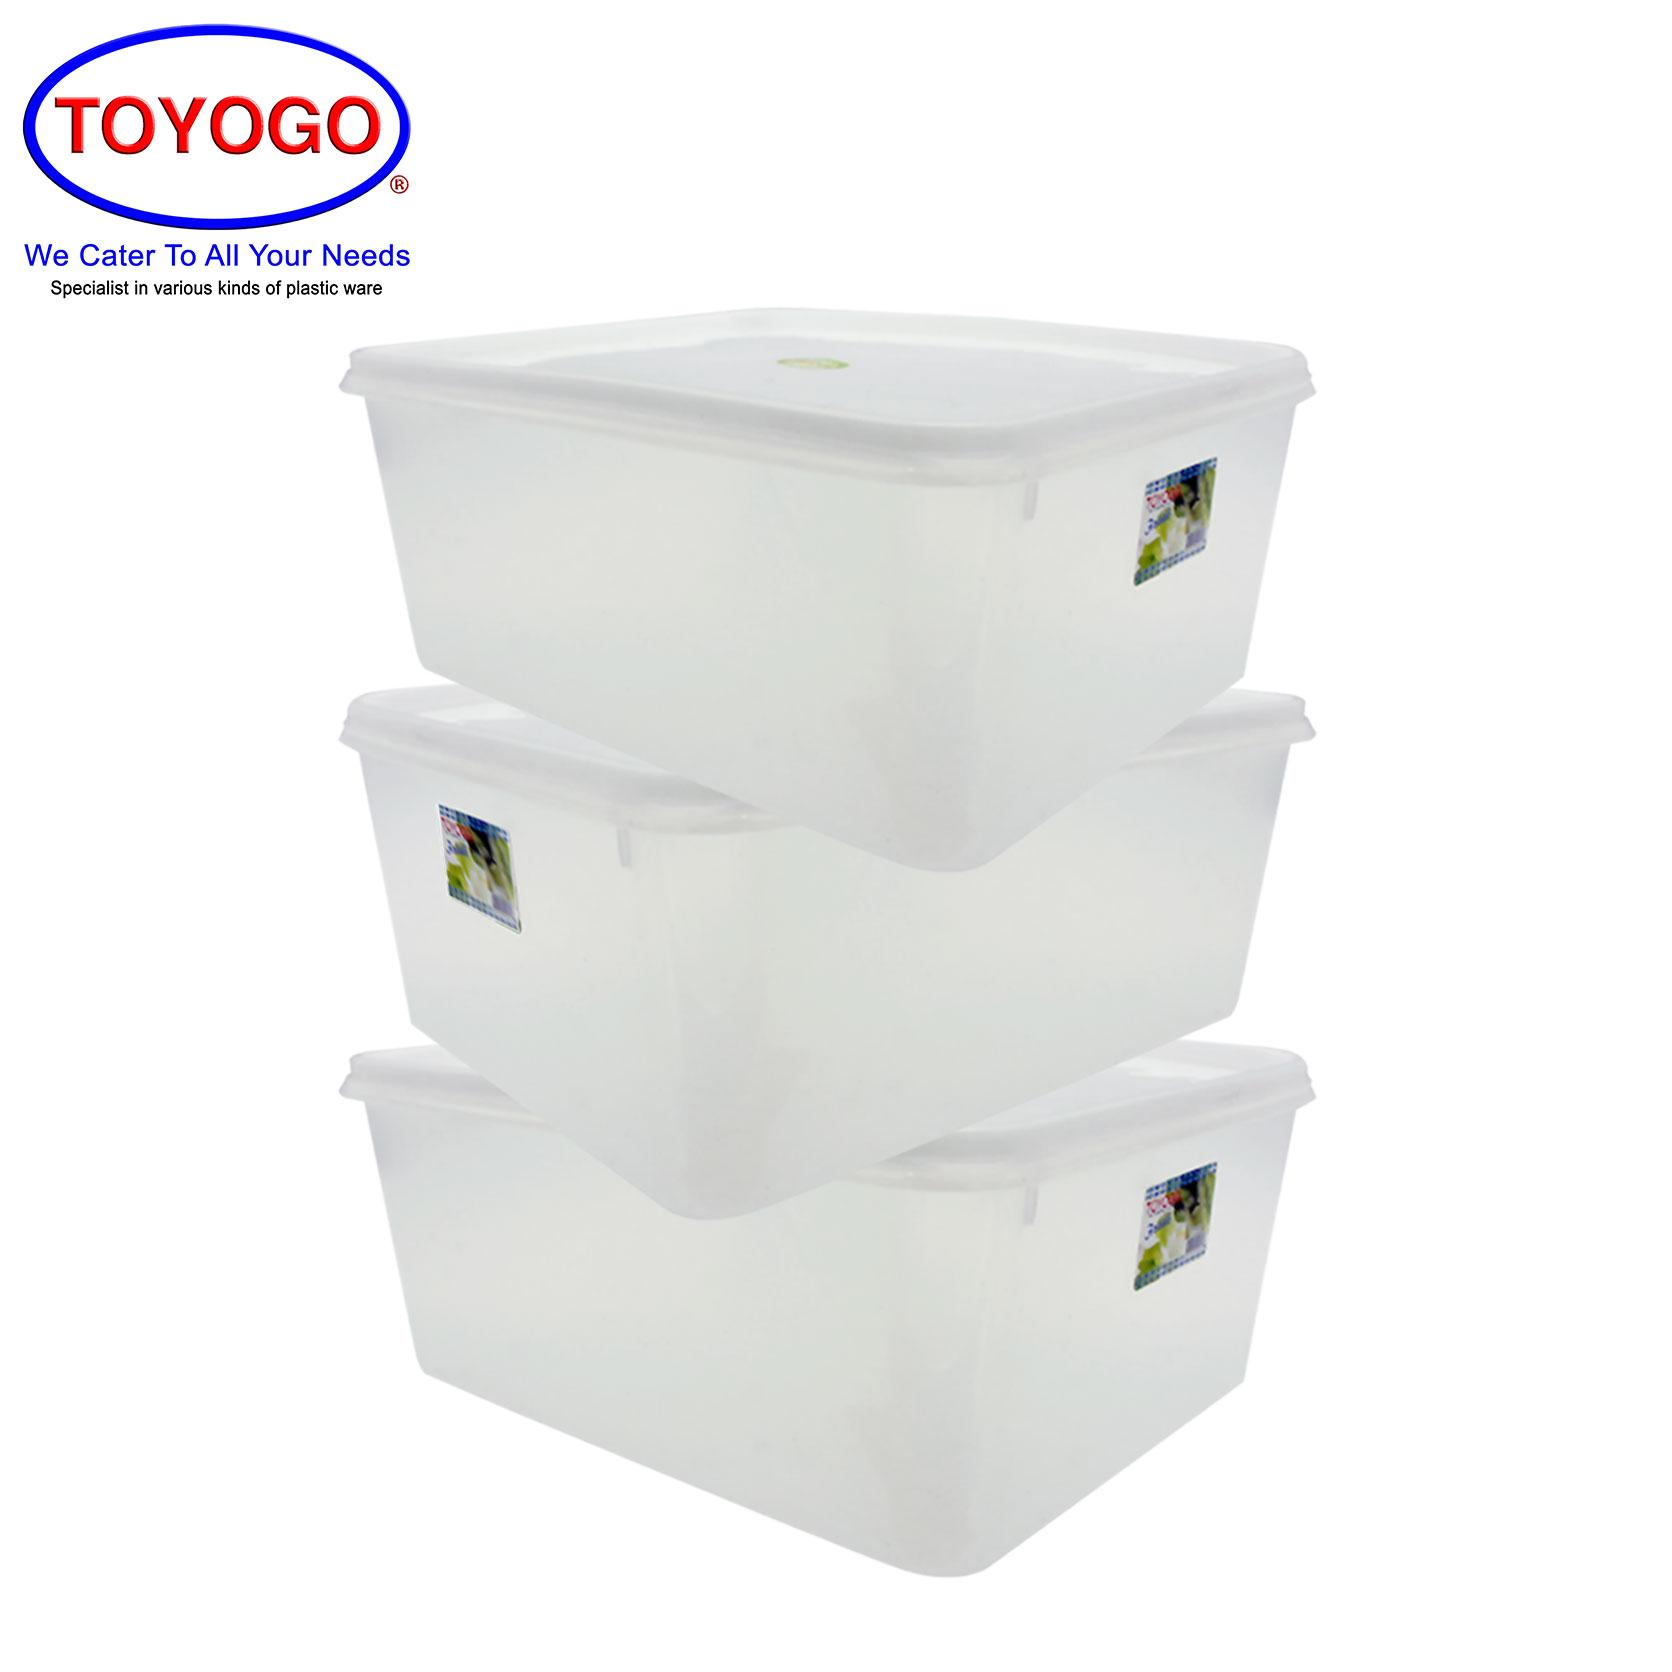 Toyogo Rectangular Box (Bundle of 3) (2181)